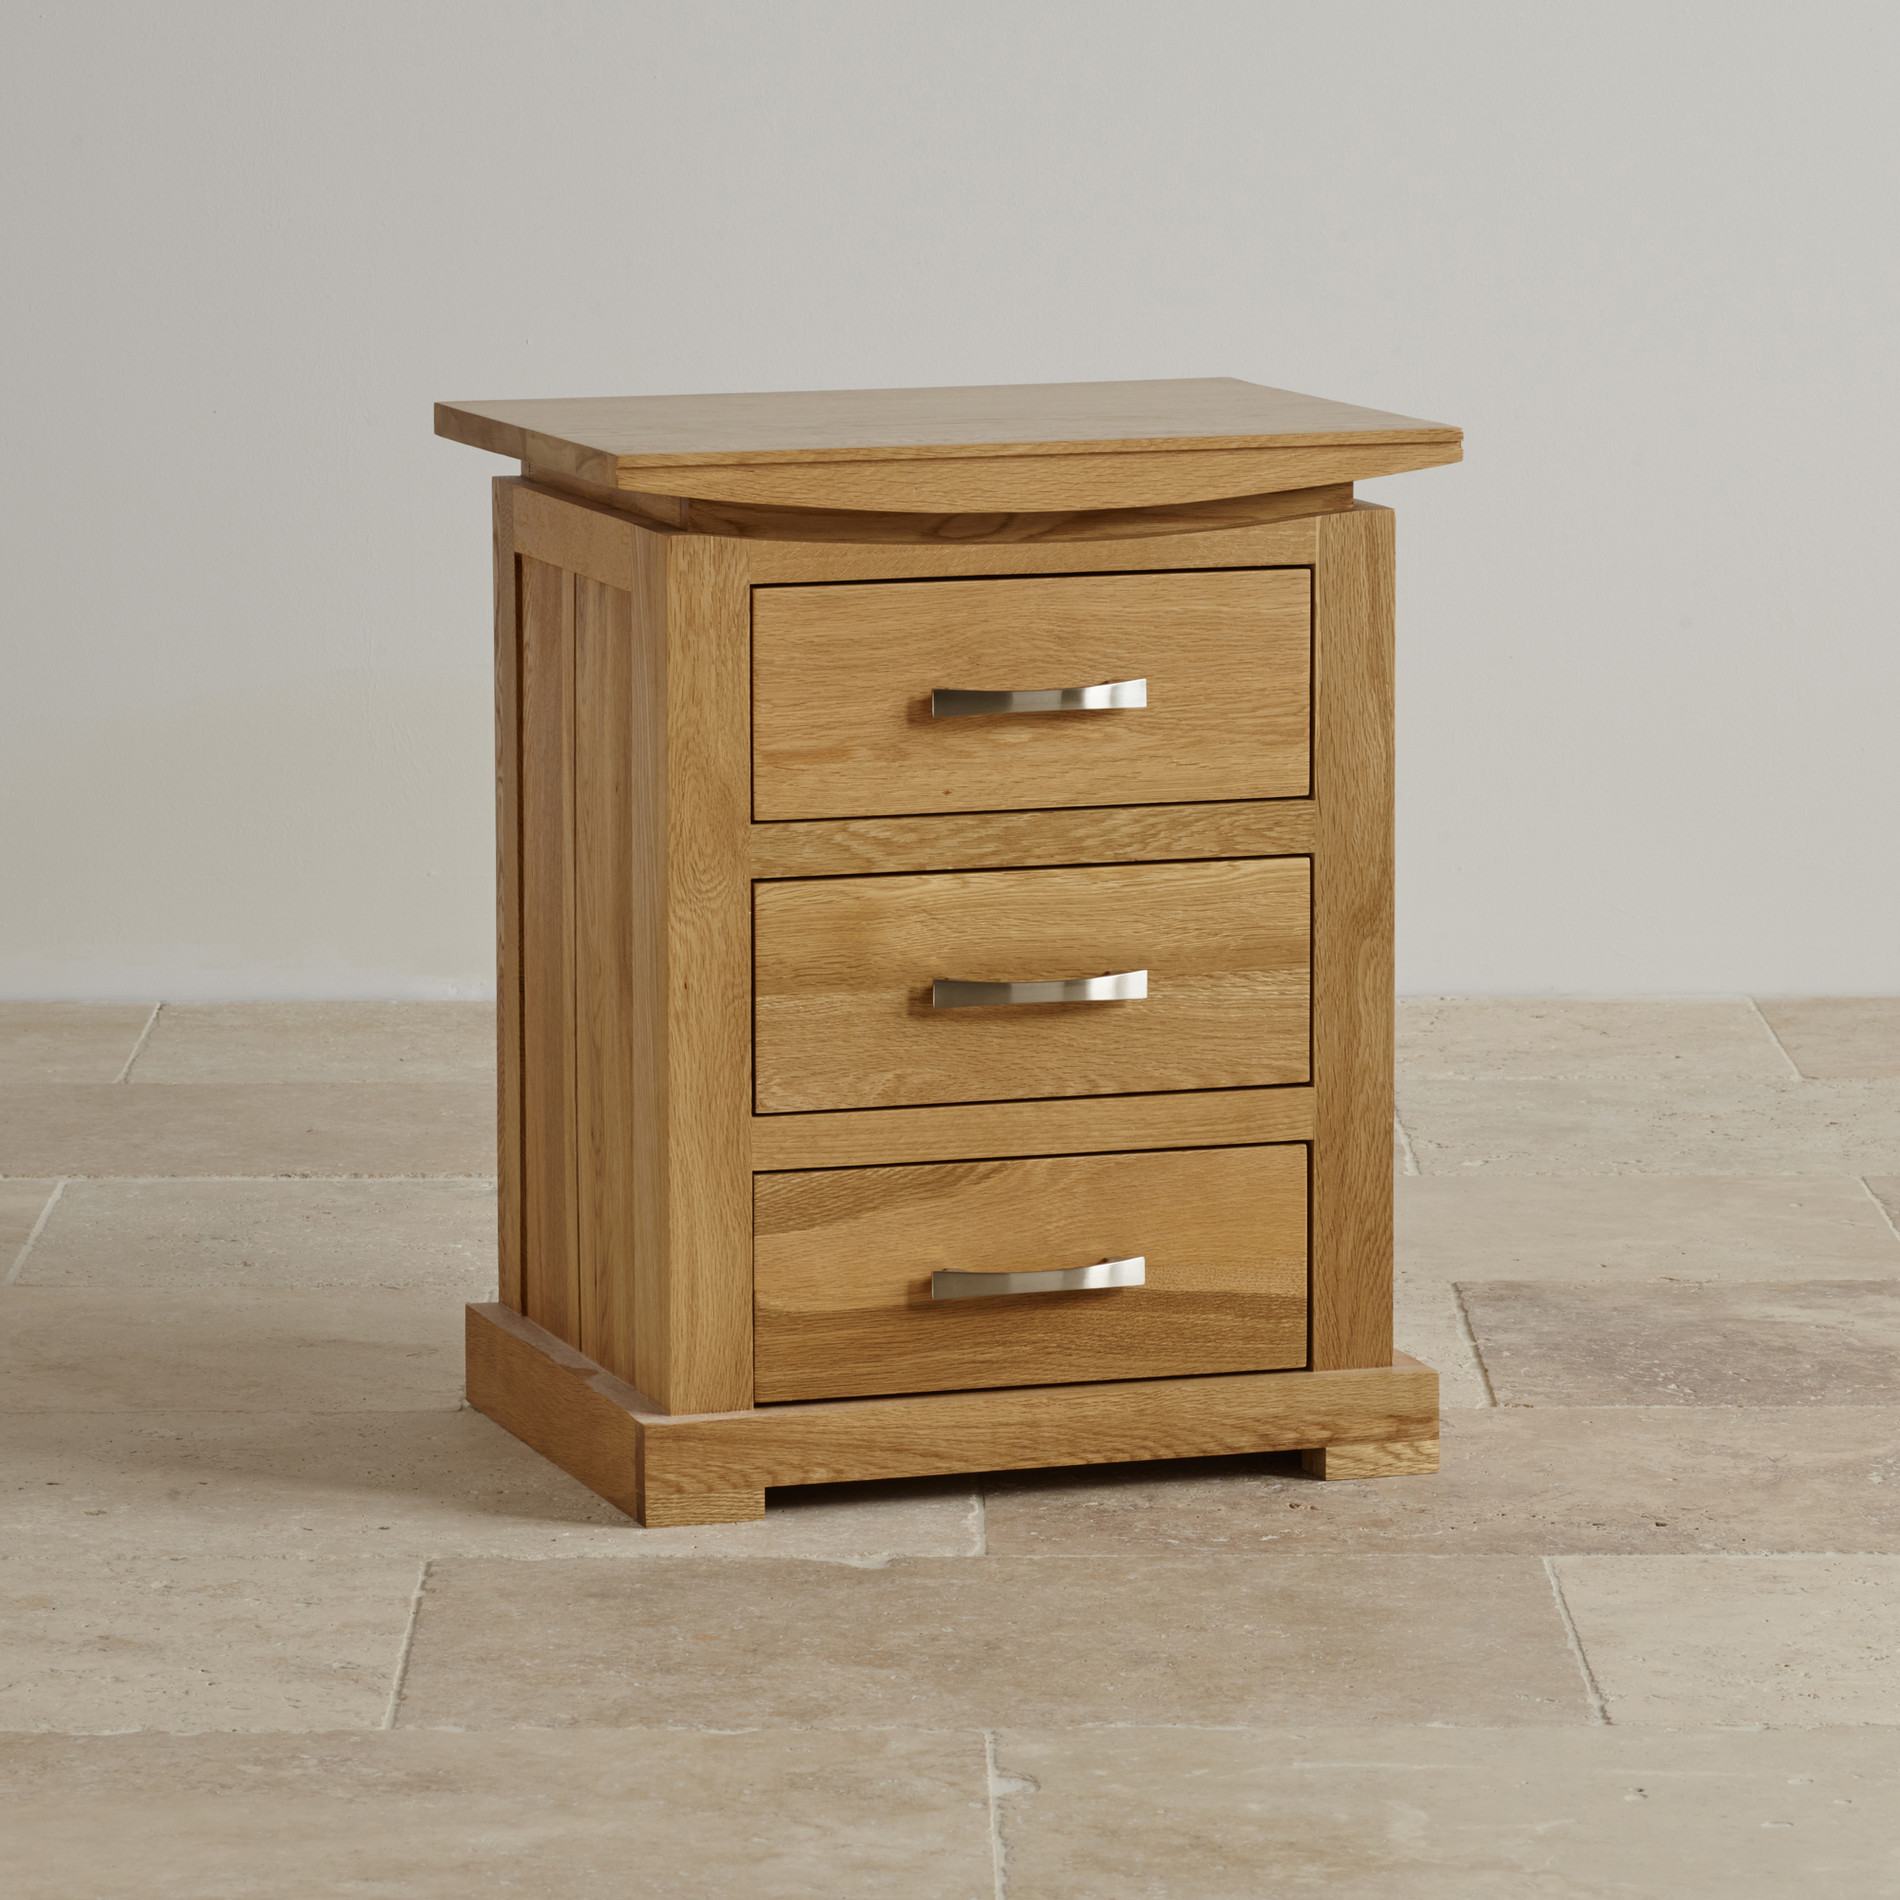 Bedroom Furniture Chest Of Drawers Tokyo 3 Drawer Bedside Table In Solid Oak Oak Furniture Land